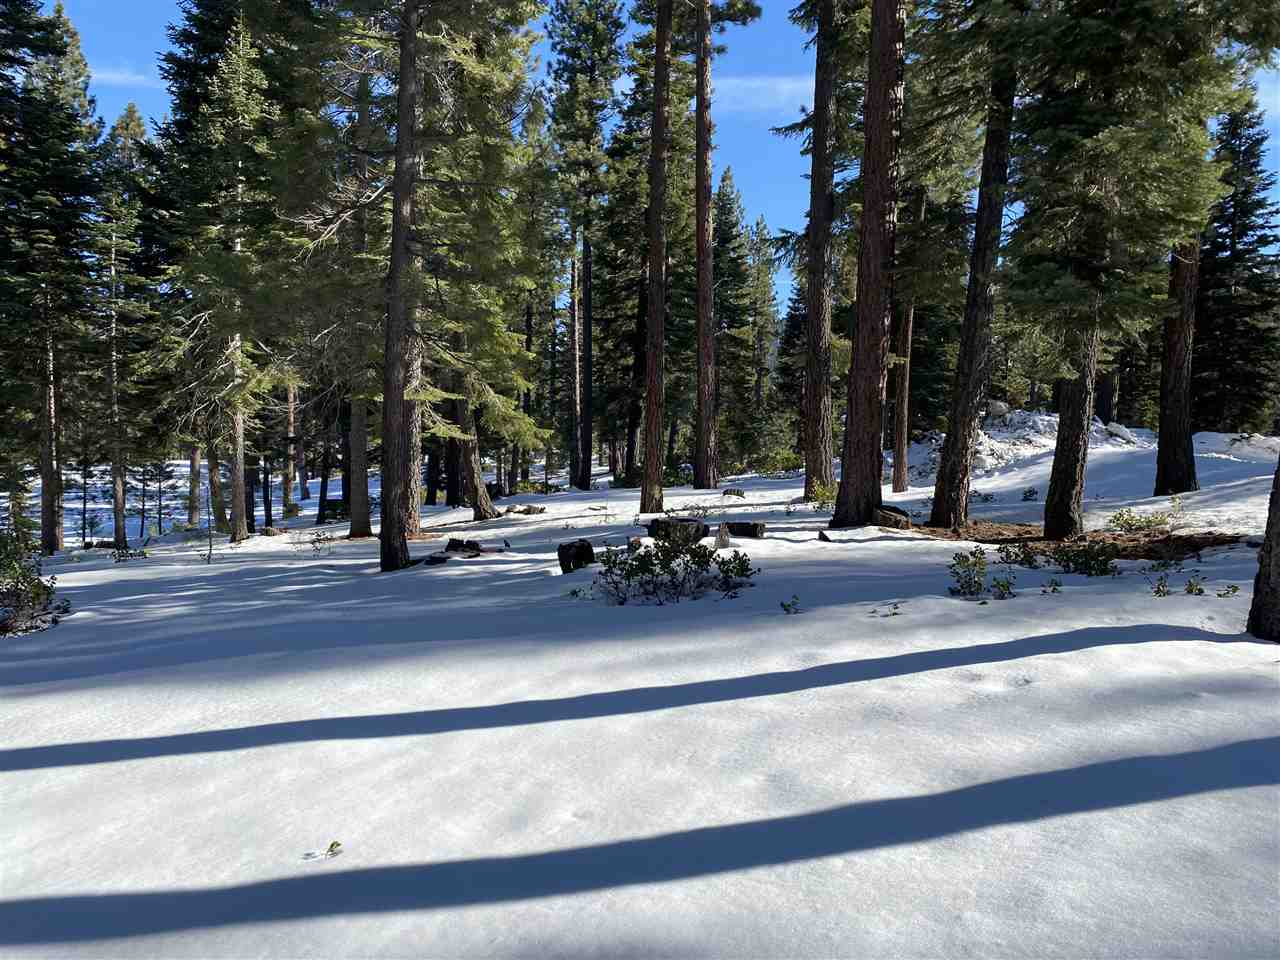 Image for 12365 Garwood Dean, Truckee, CA 96161